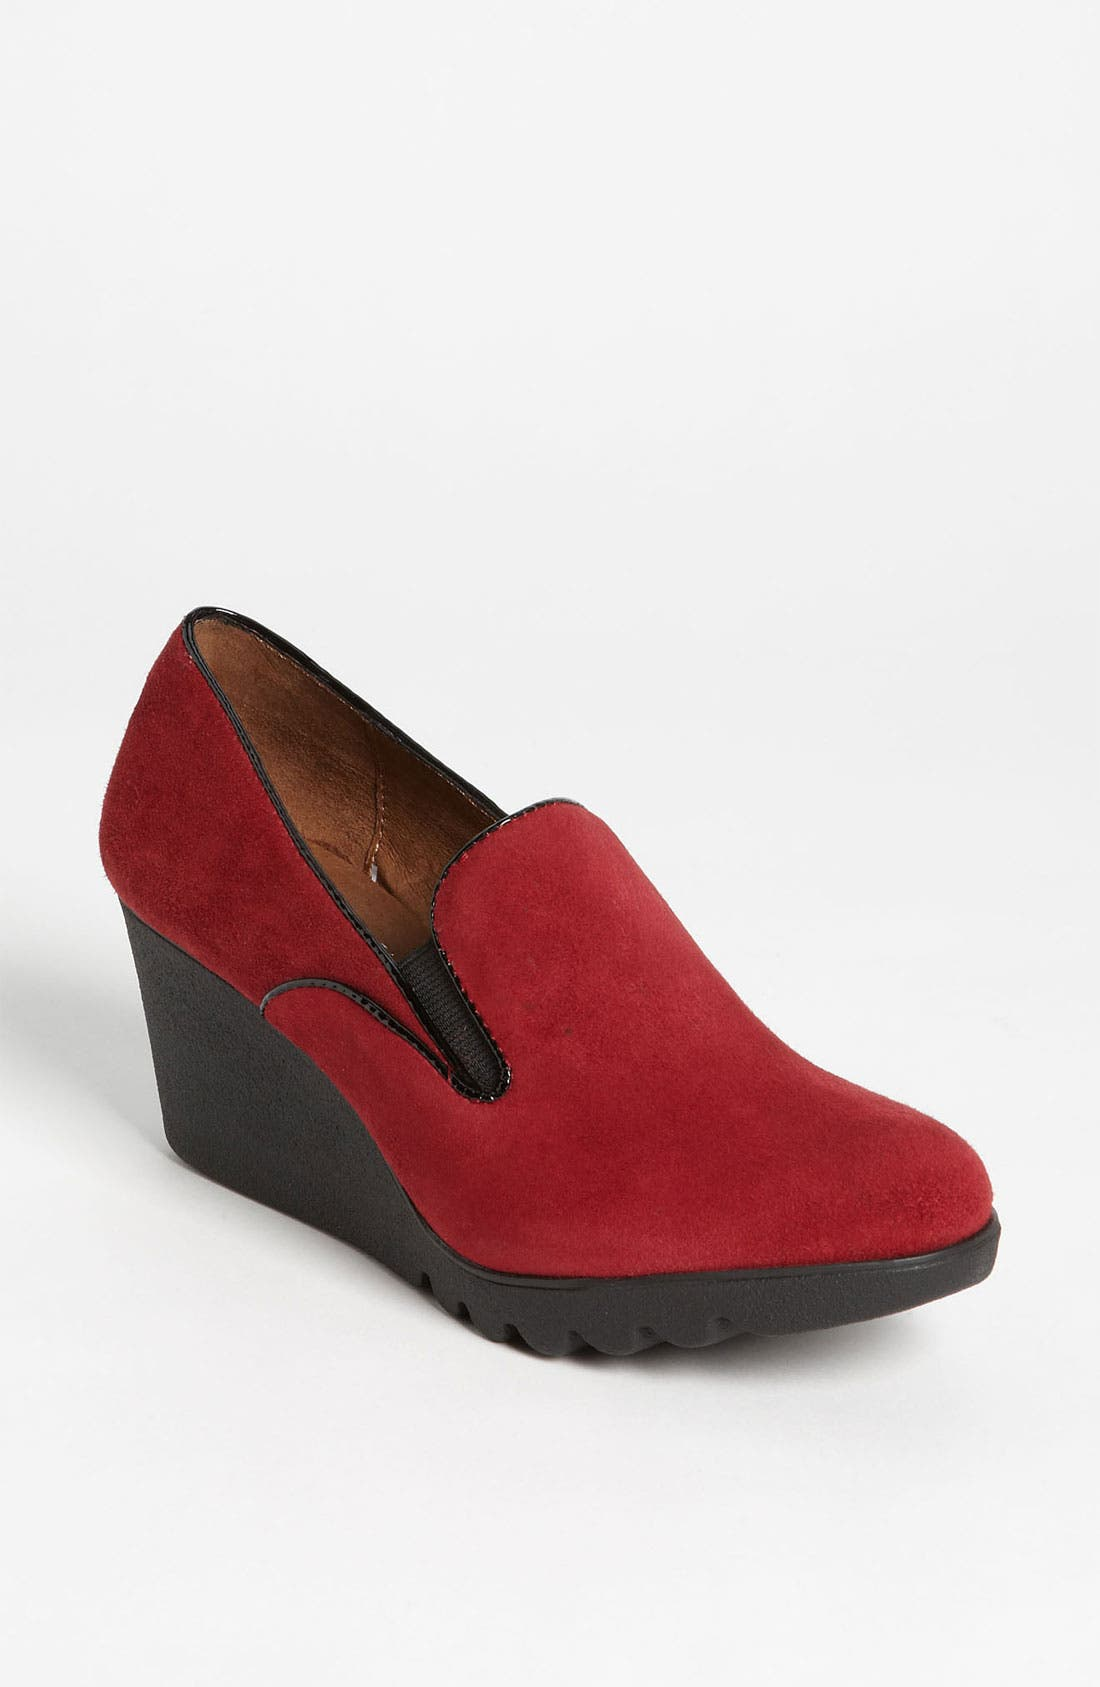 Alternate Image 1 Selected - Donald J Pliner 'Melia' Wedge Loafer (Women)